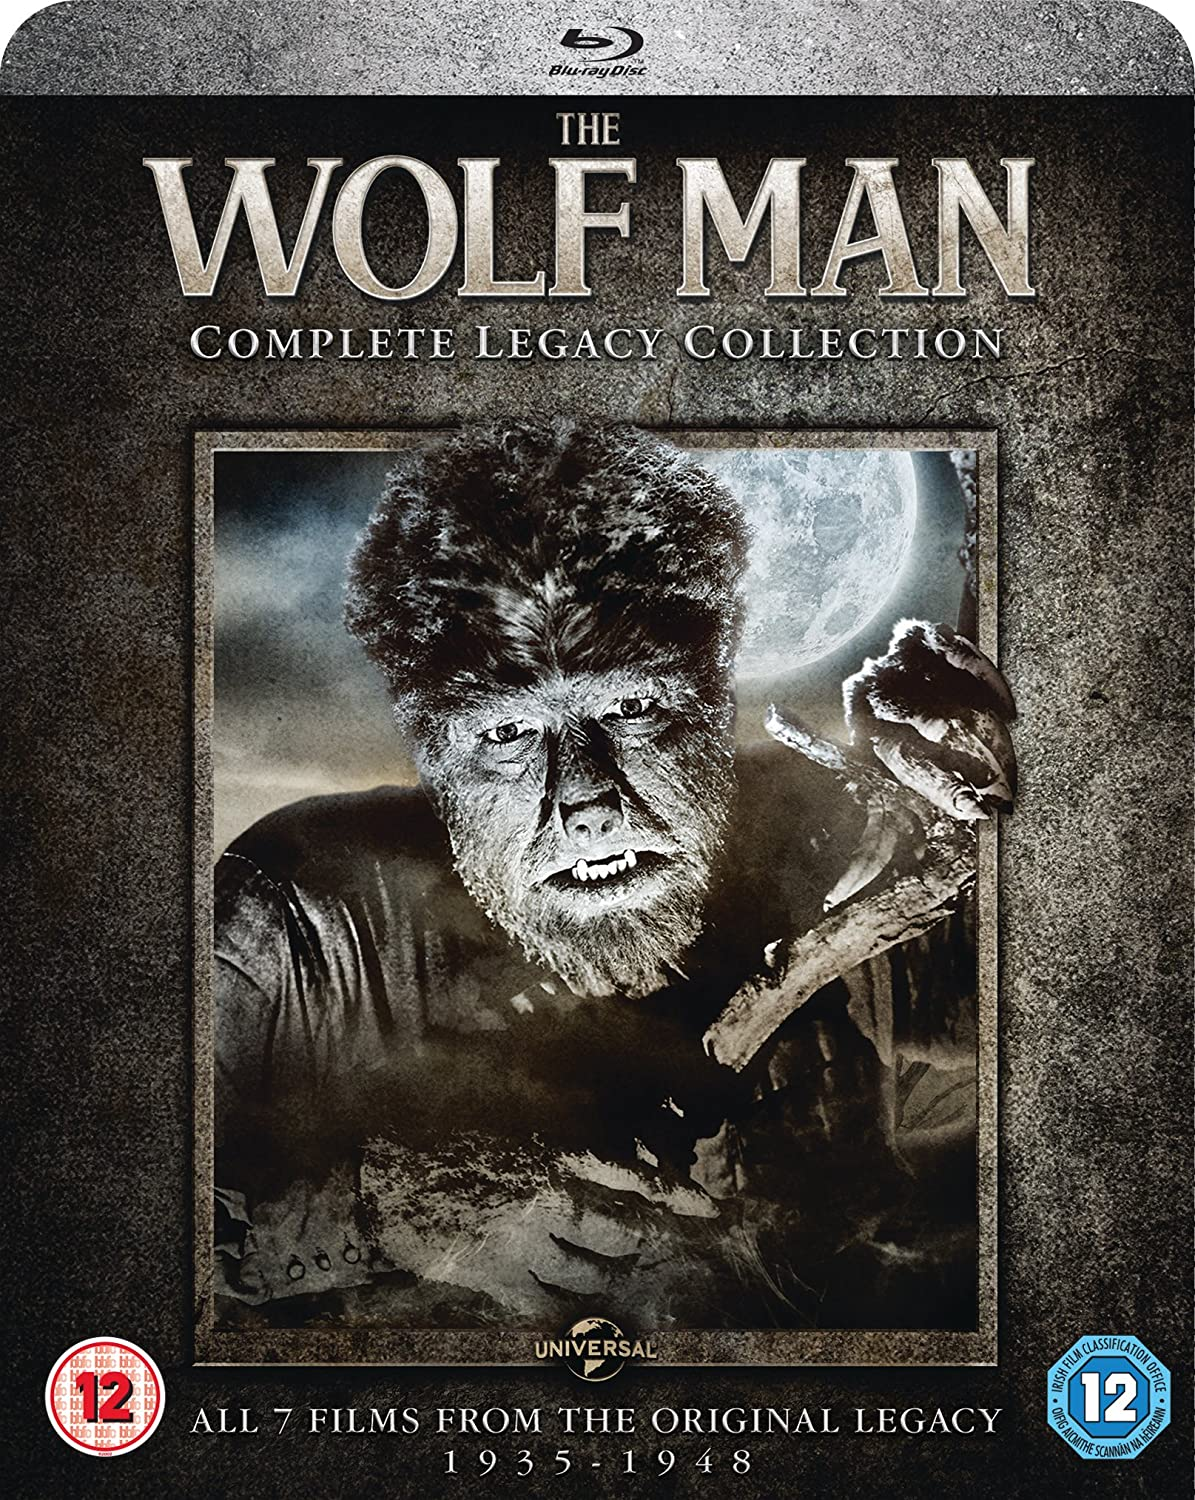 The Wolf Man: Complete Legacy 2017 Blu-ray NEW New Orleans Mall BD Collection